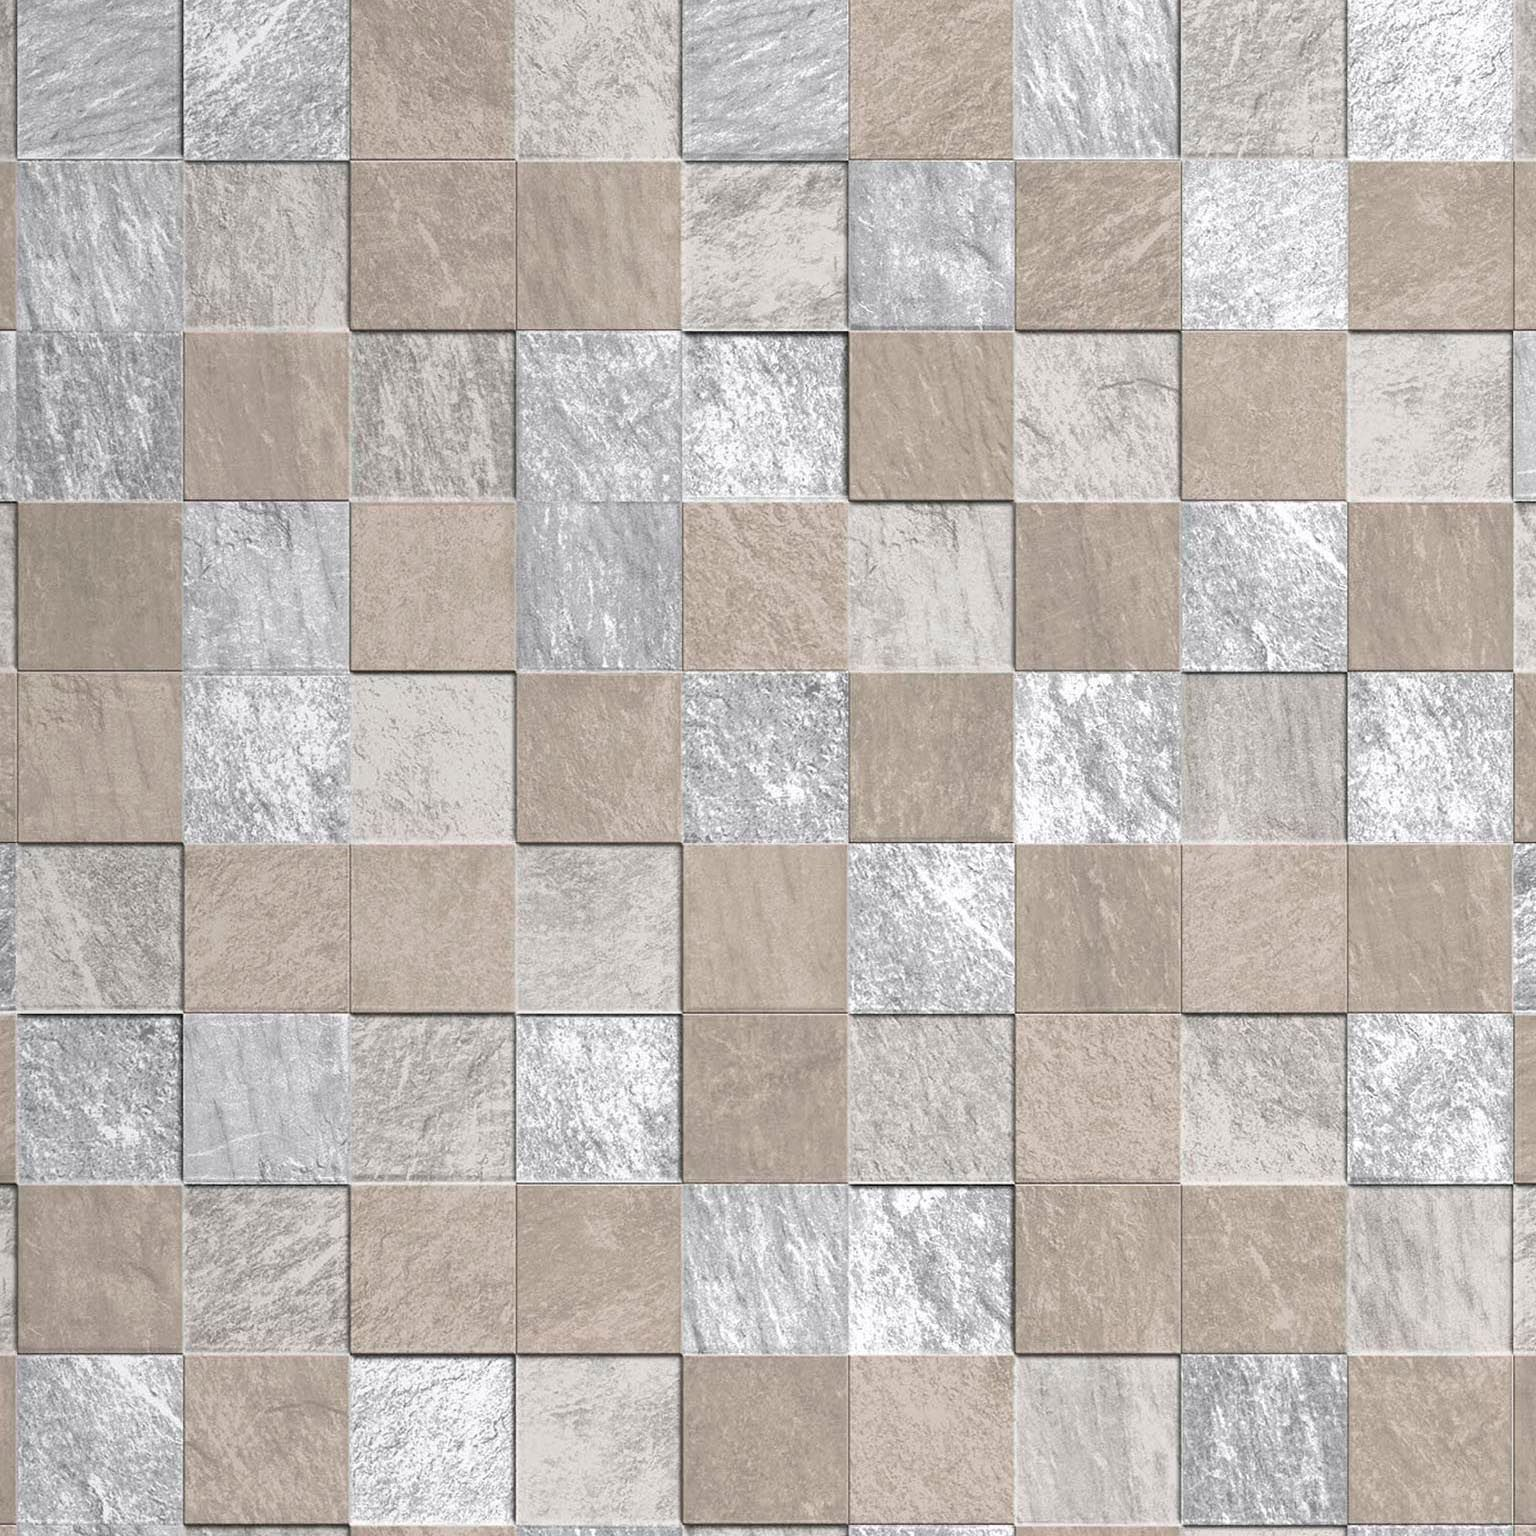 Contour Beige Natural Stone Tile Metallic Kitchen Bathroom